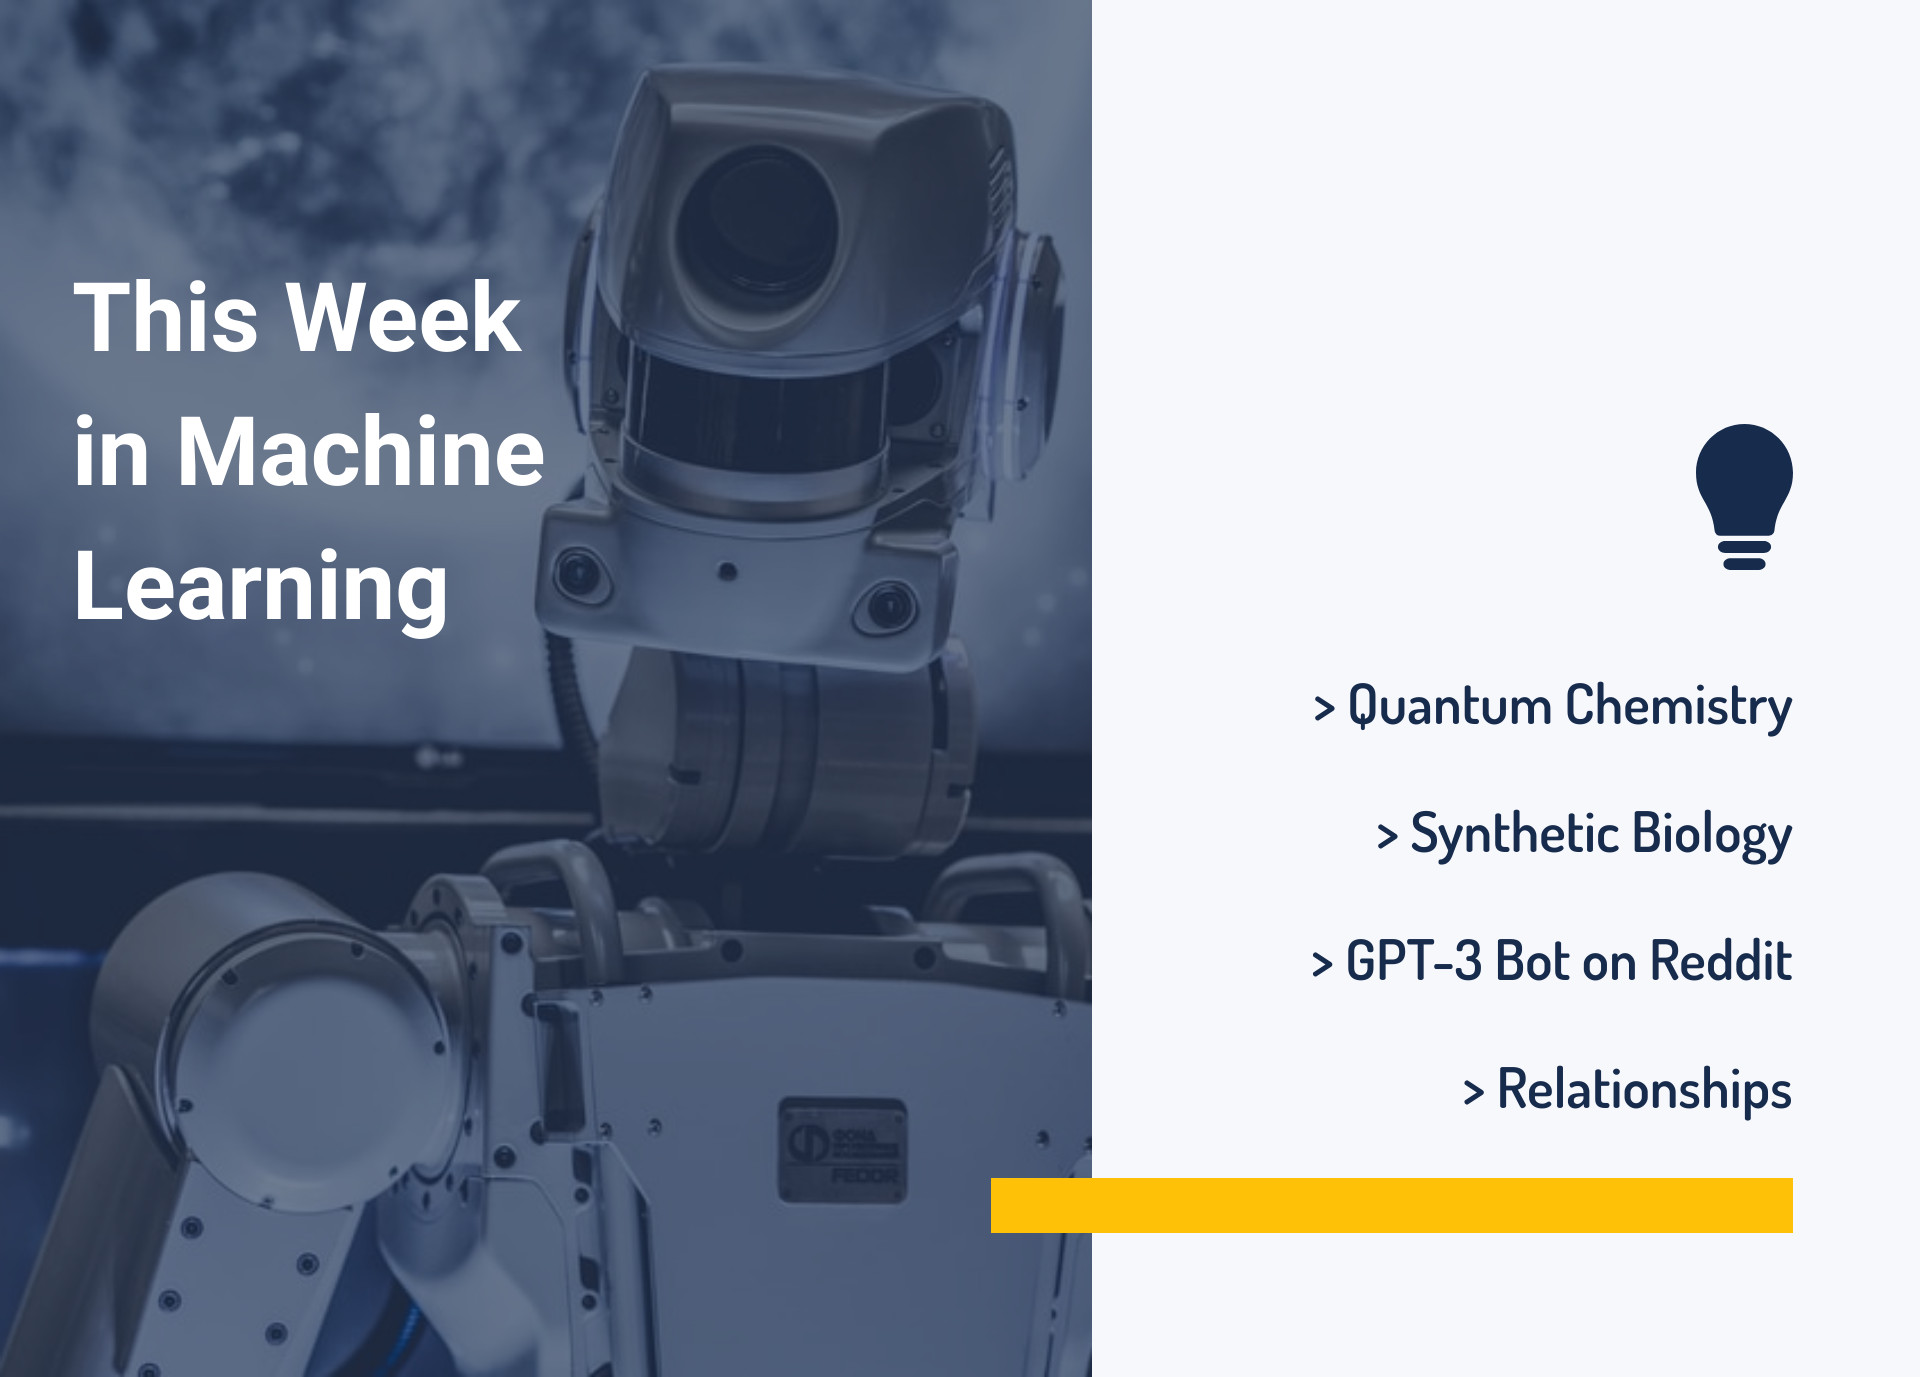 This Week in Machine Learning: Quantum Chemistry, Synthetic Biology, GPT-3 Bot on Reddit, and Relationships